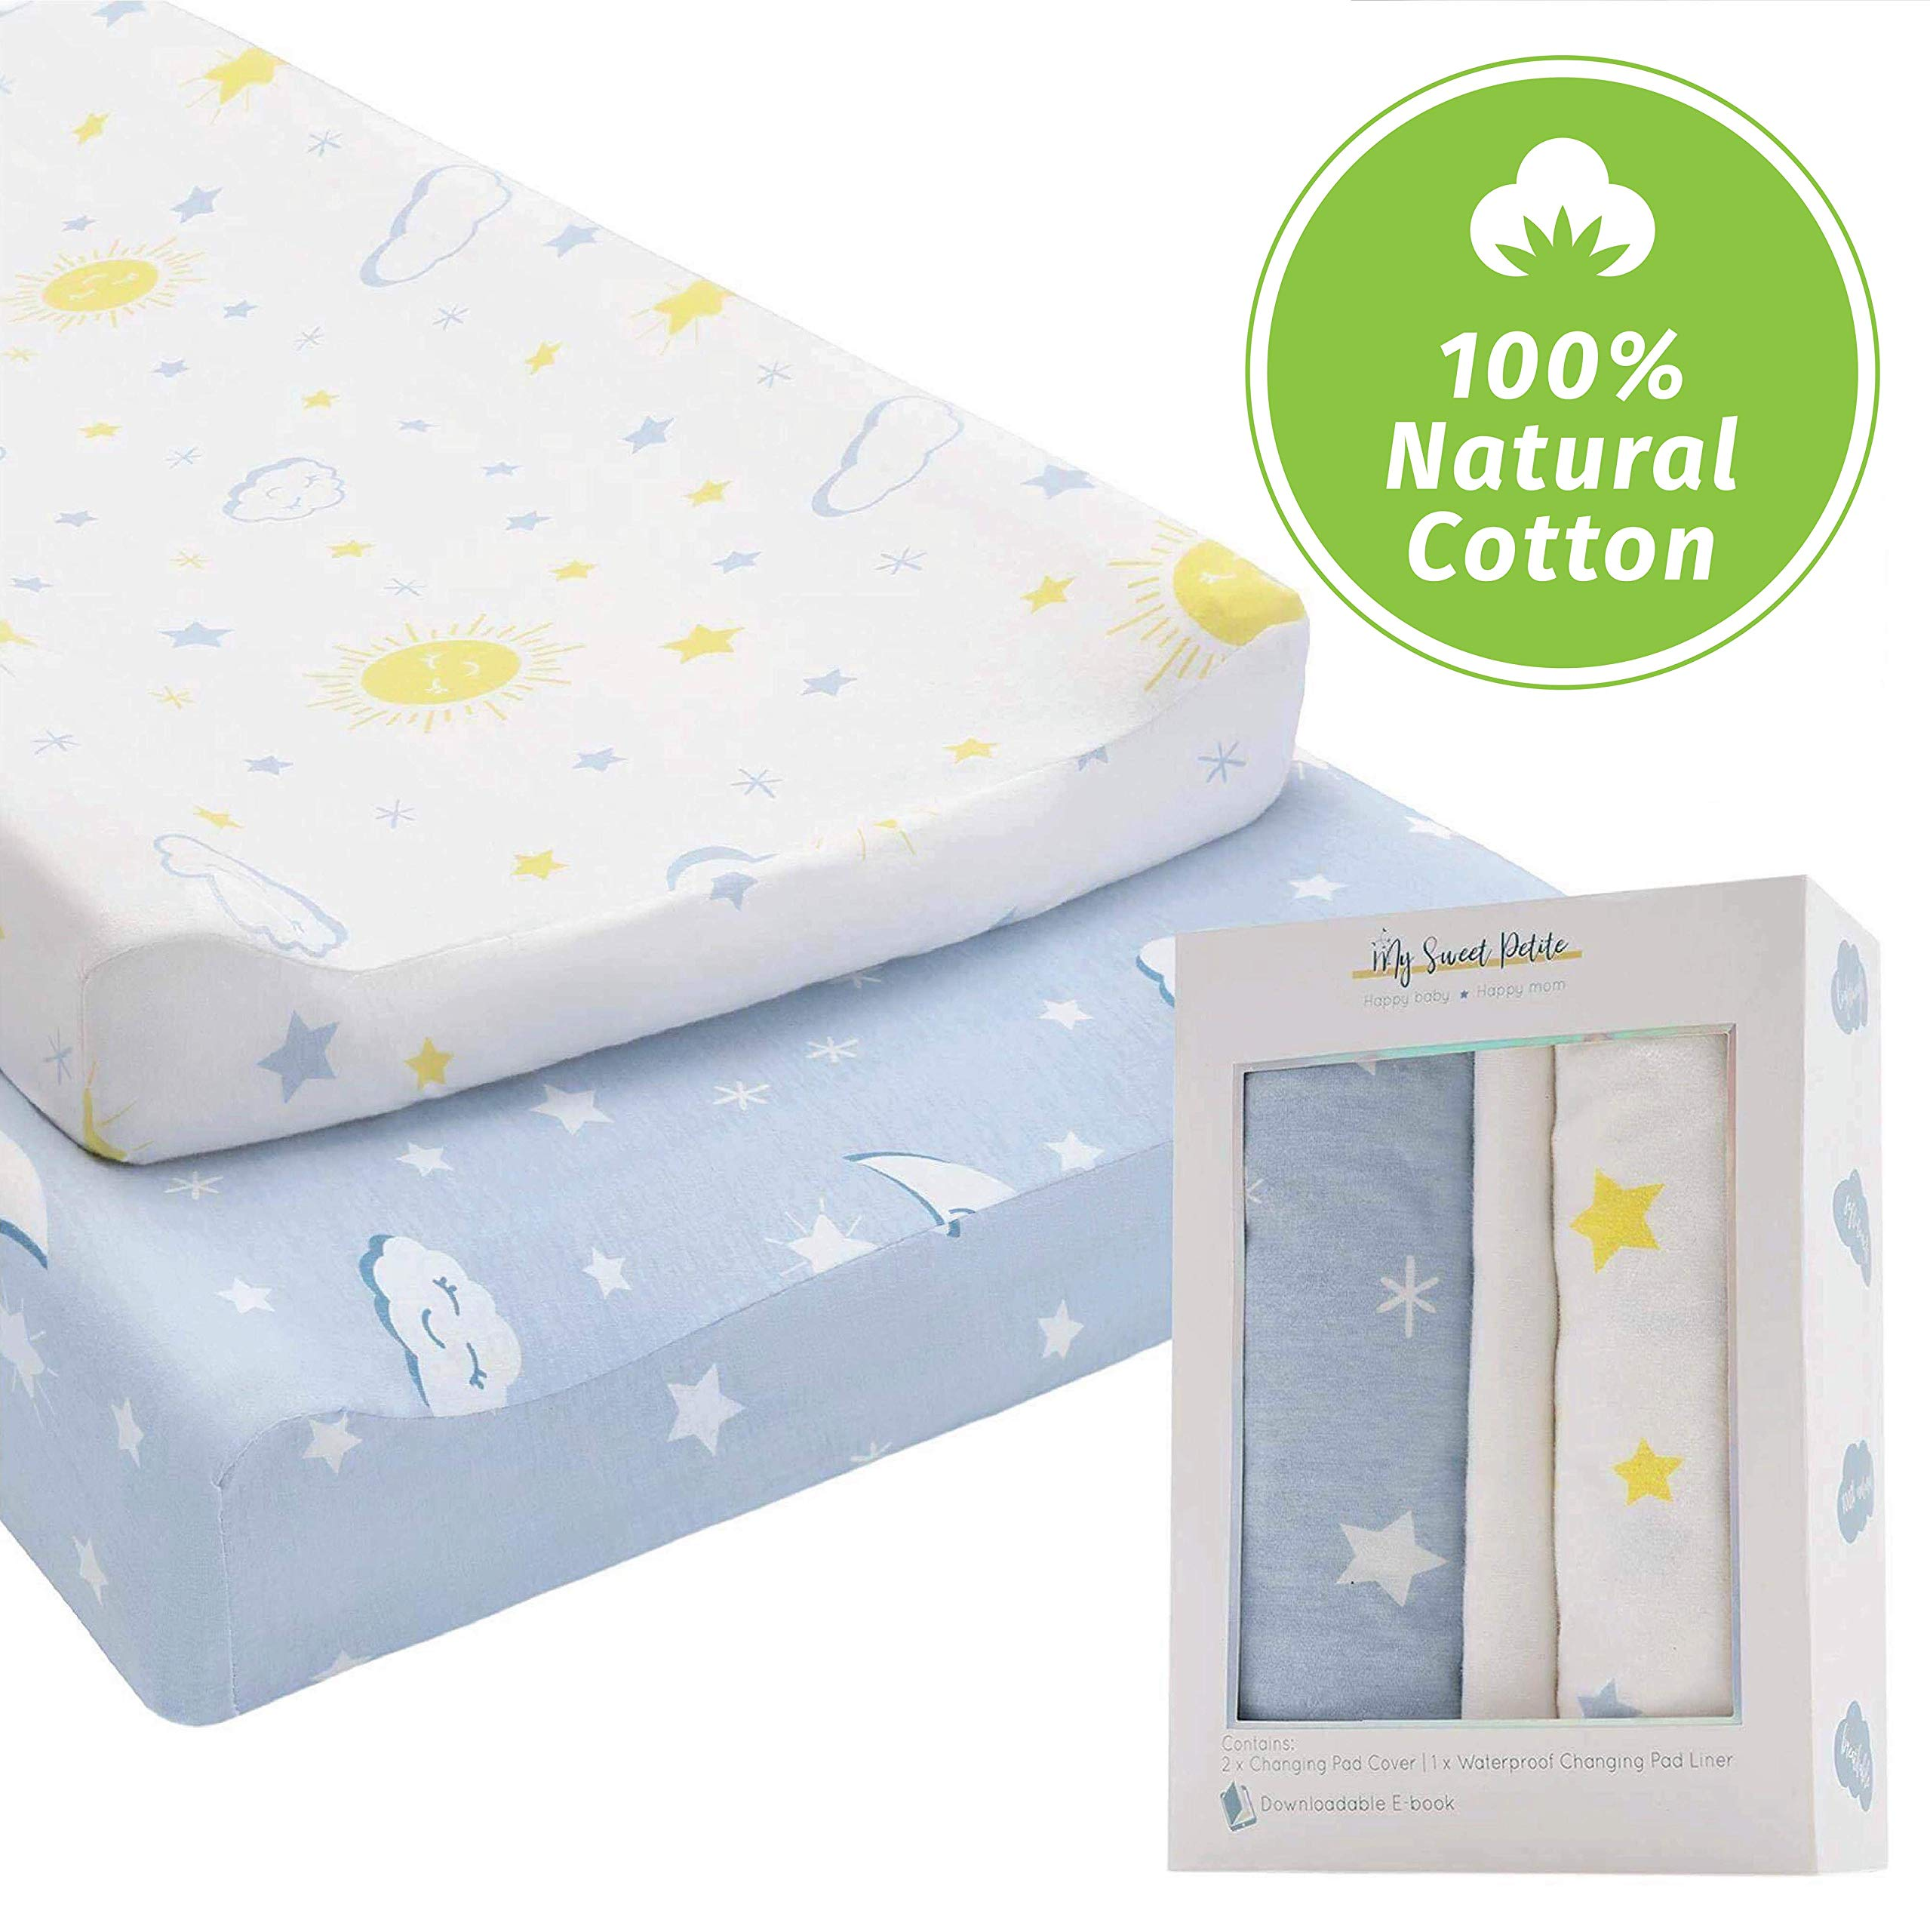 Changing Pad Cover Set with Waterproof Pad Liner Included -100% Premium Cotton Changing Table Pad Cover for Baby Boy and Girl- 2 Pack Super Soft Stretchy Diaper Changing Pad Covers-Blue and White by My Sweet Petite